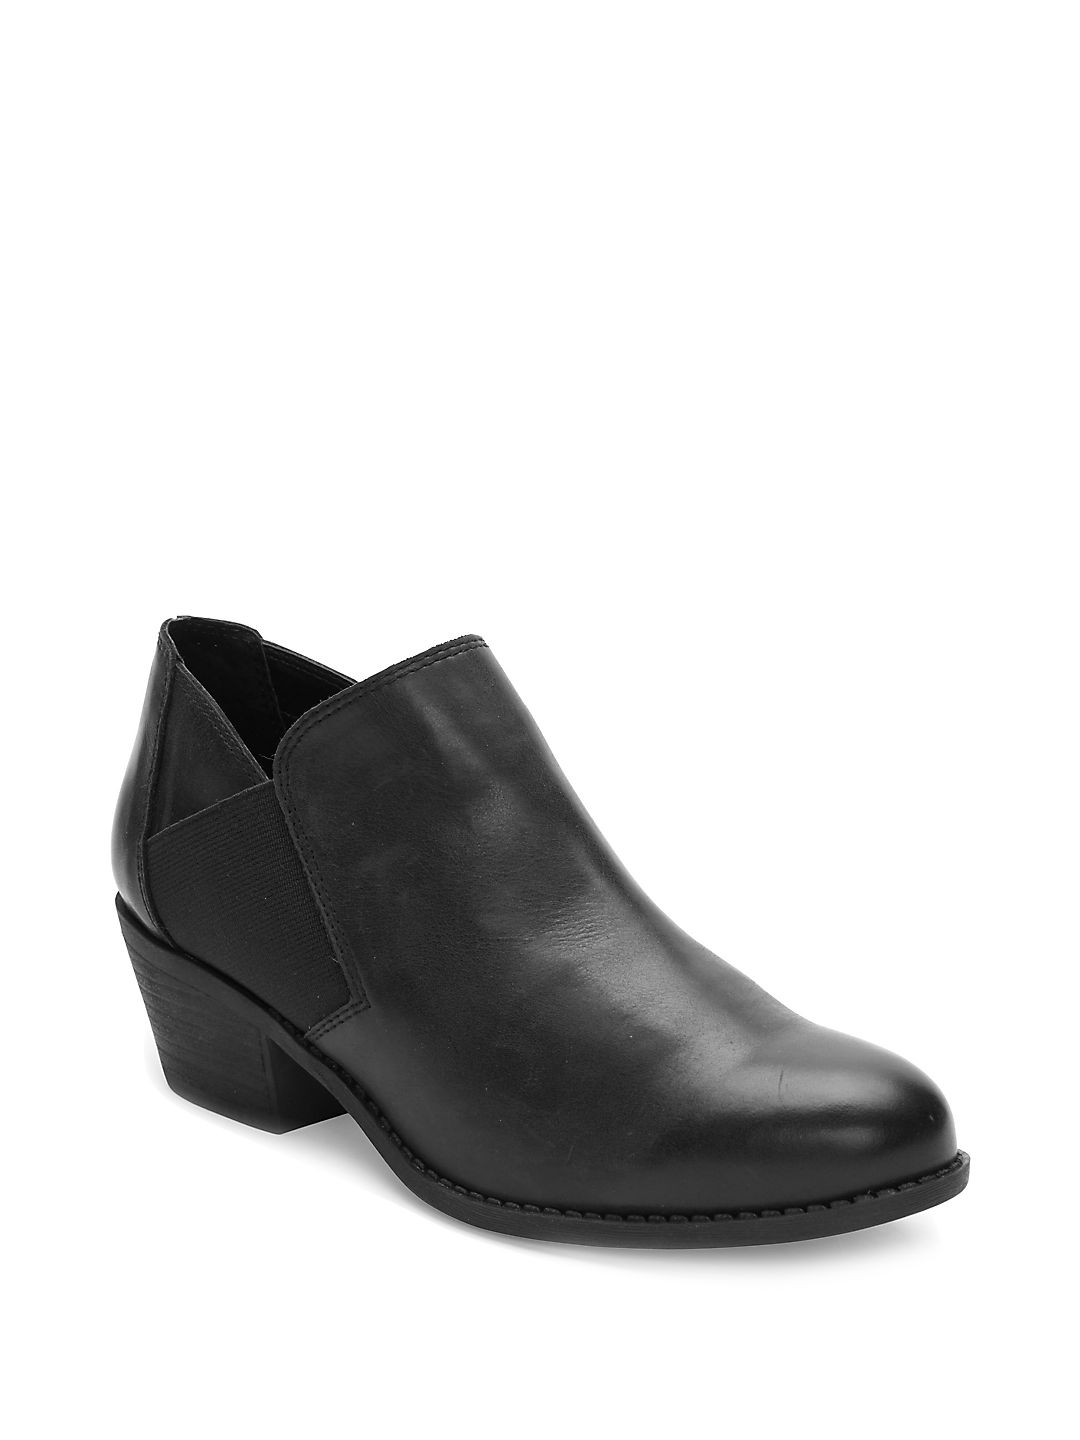 Zeuse Zo Leather Chelsea Boots